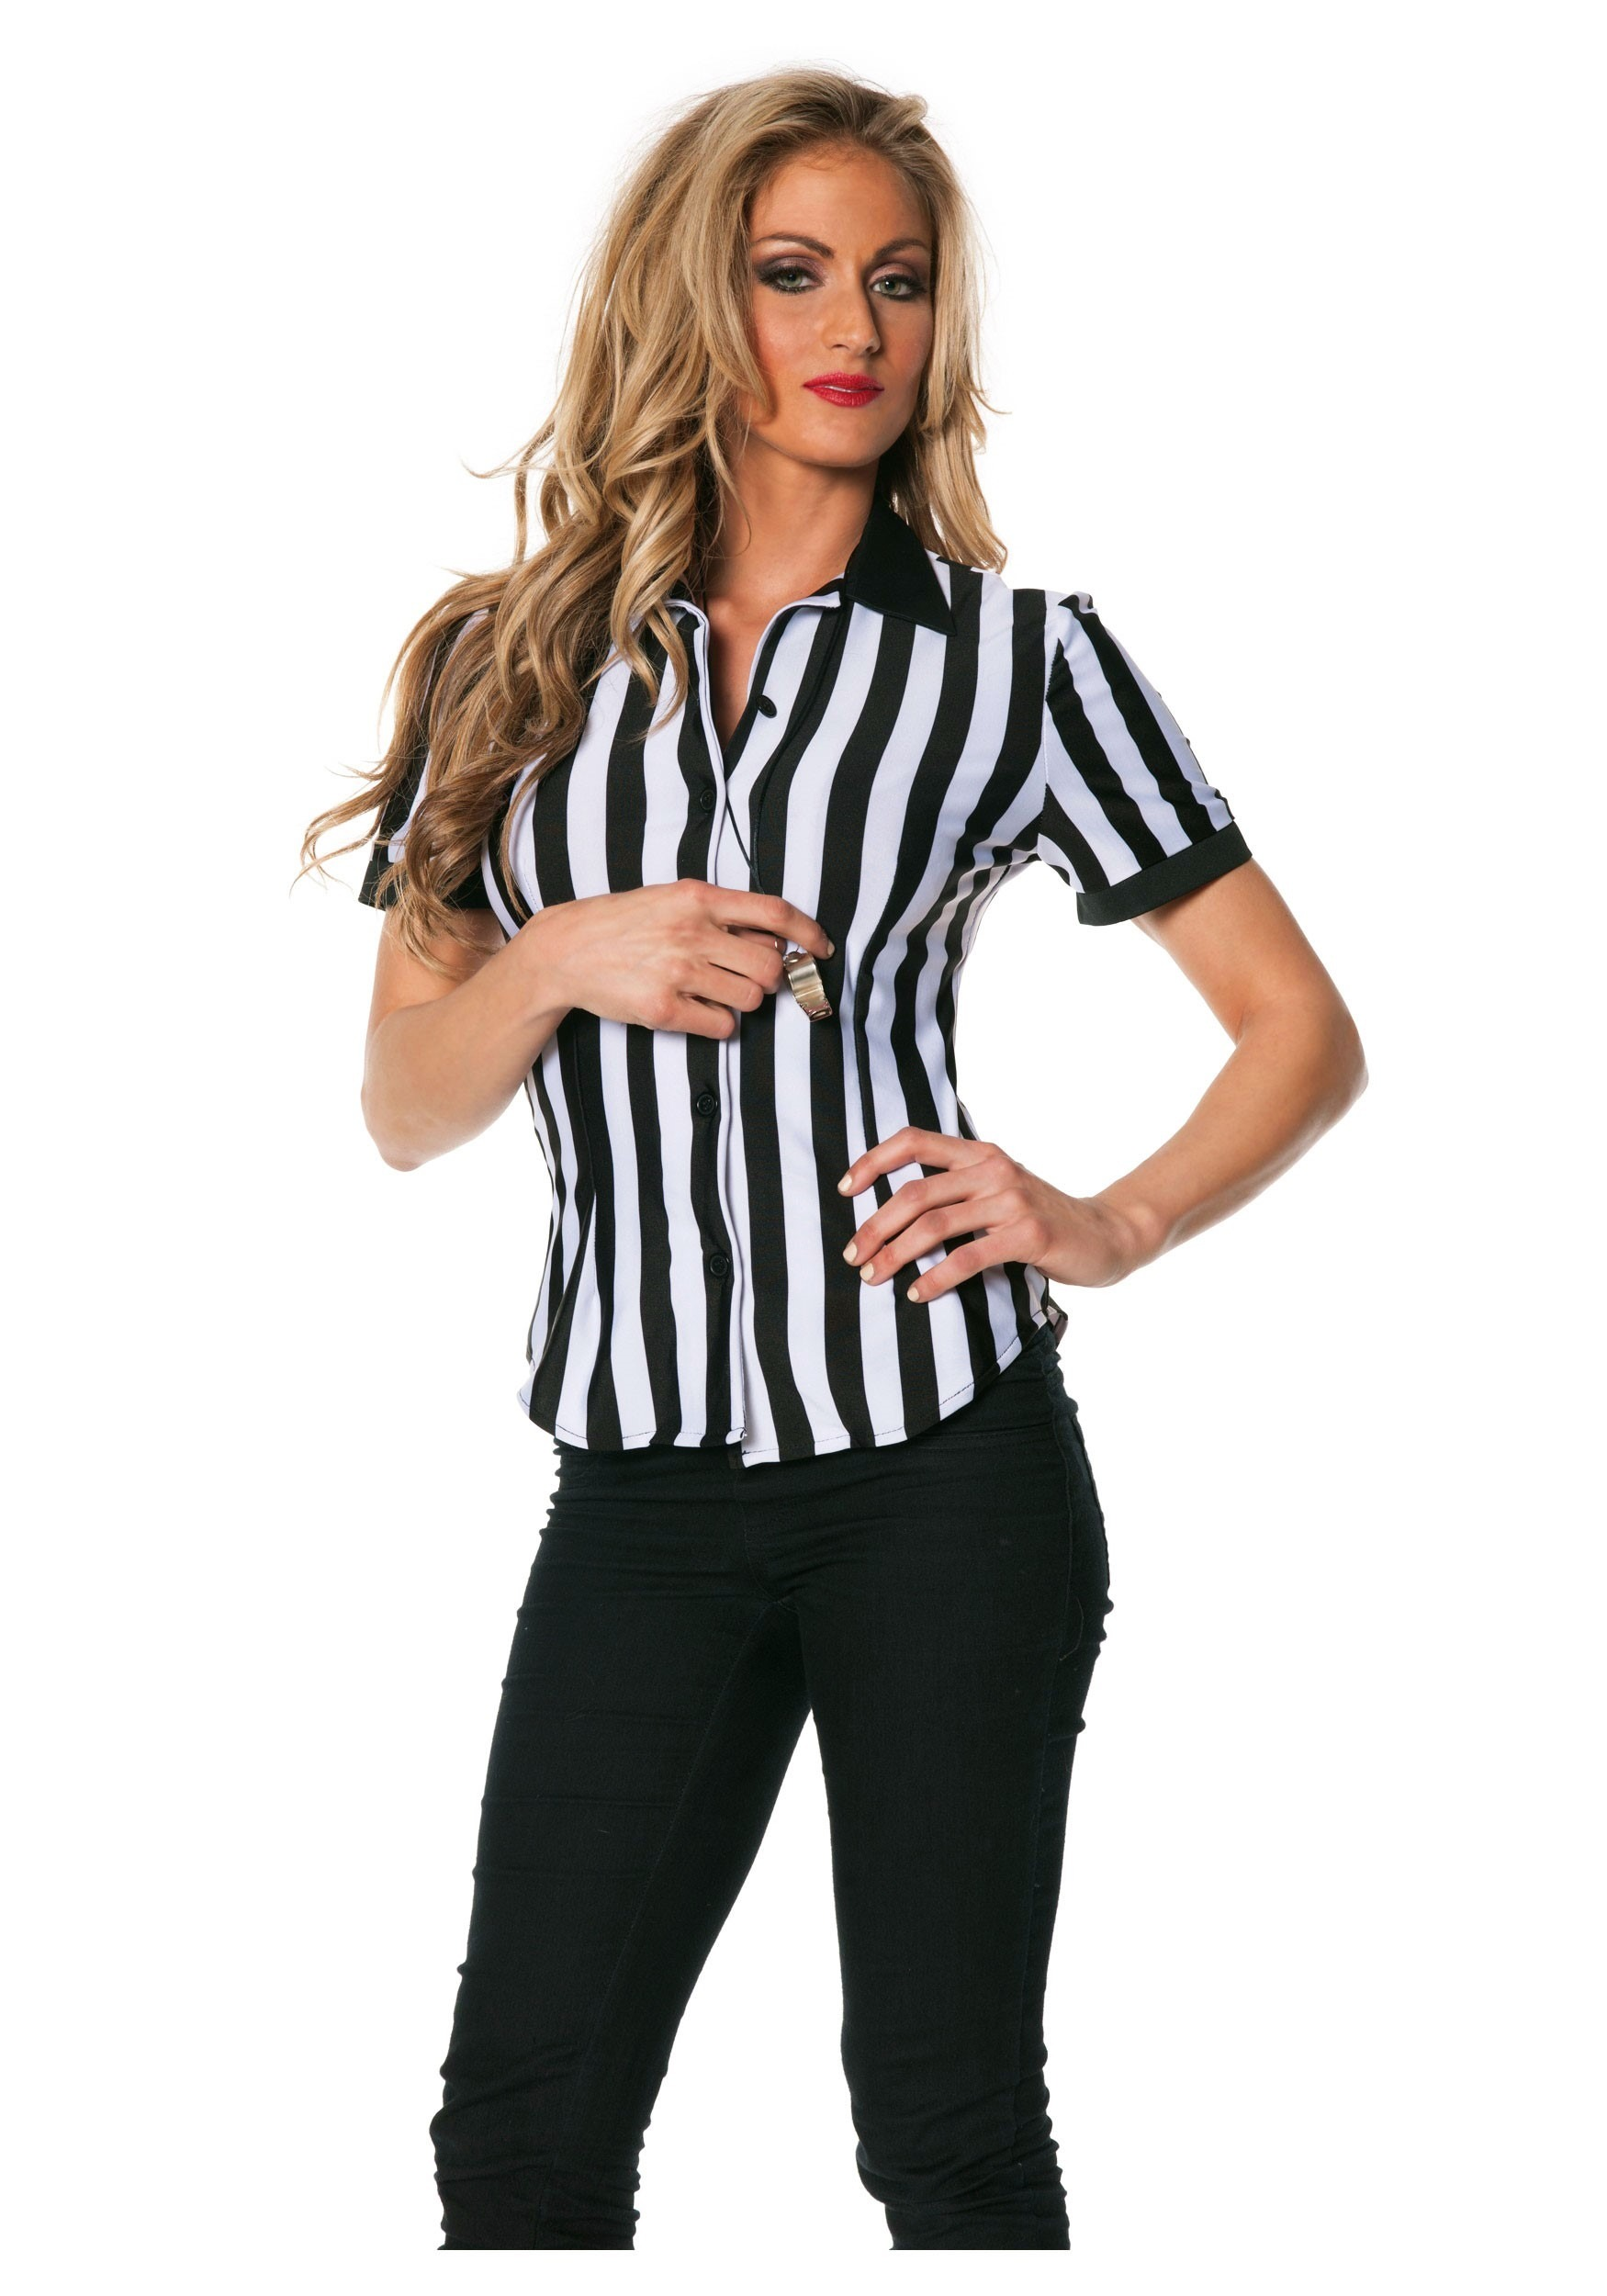 Women Referee Shirts